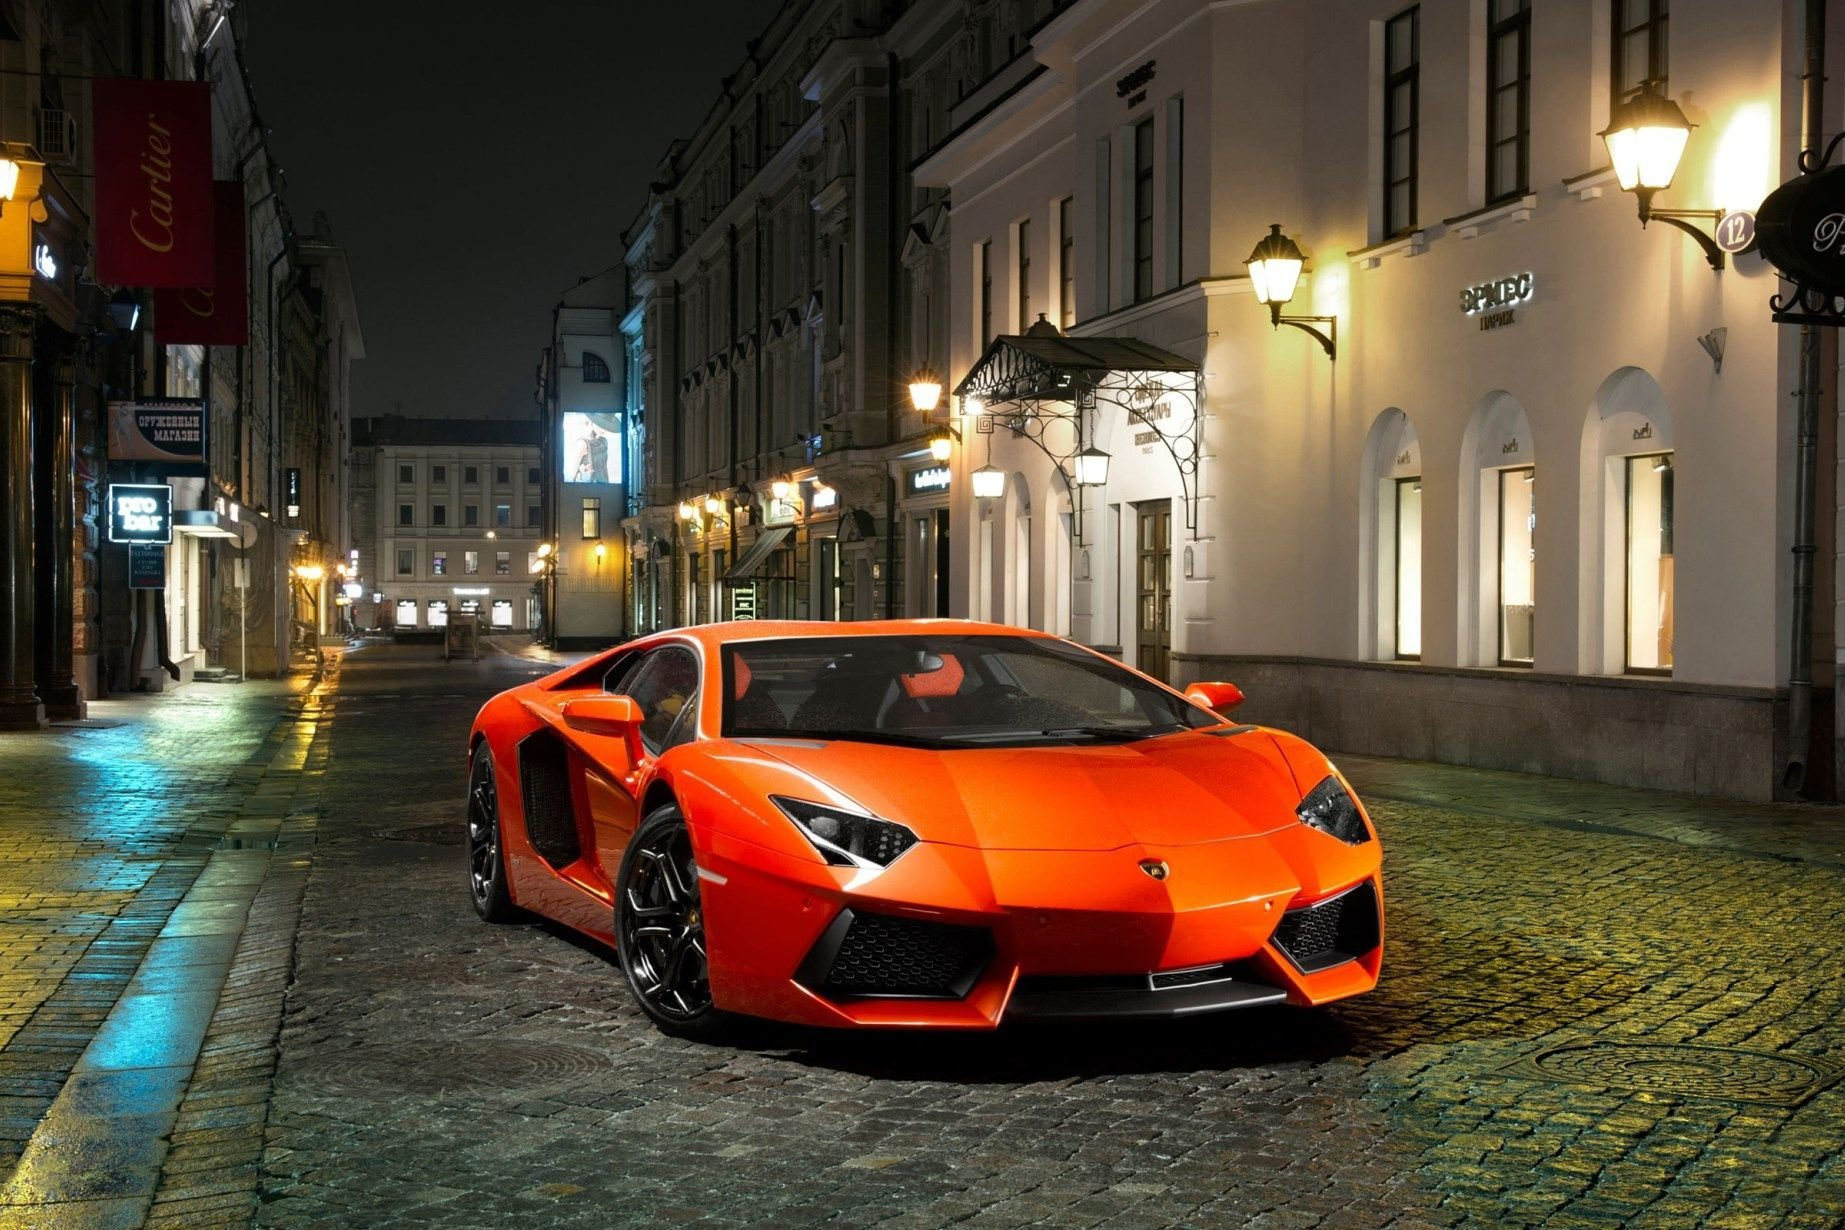 New Download Lamborghini Aventador Lp700 Cars 4K Hd Wallpapers On This Month